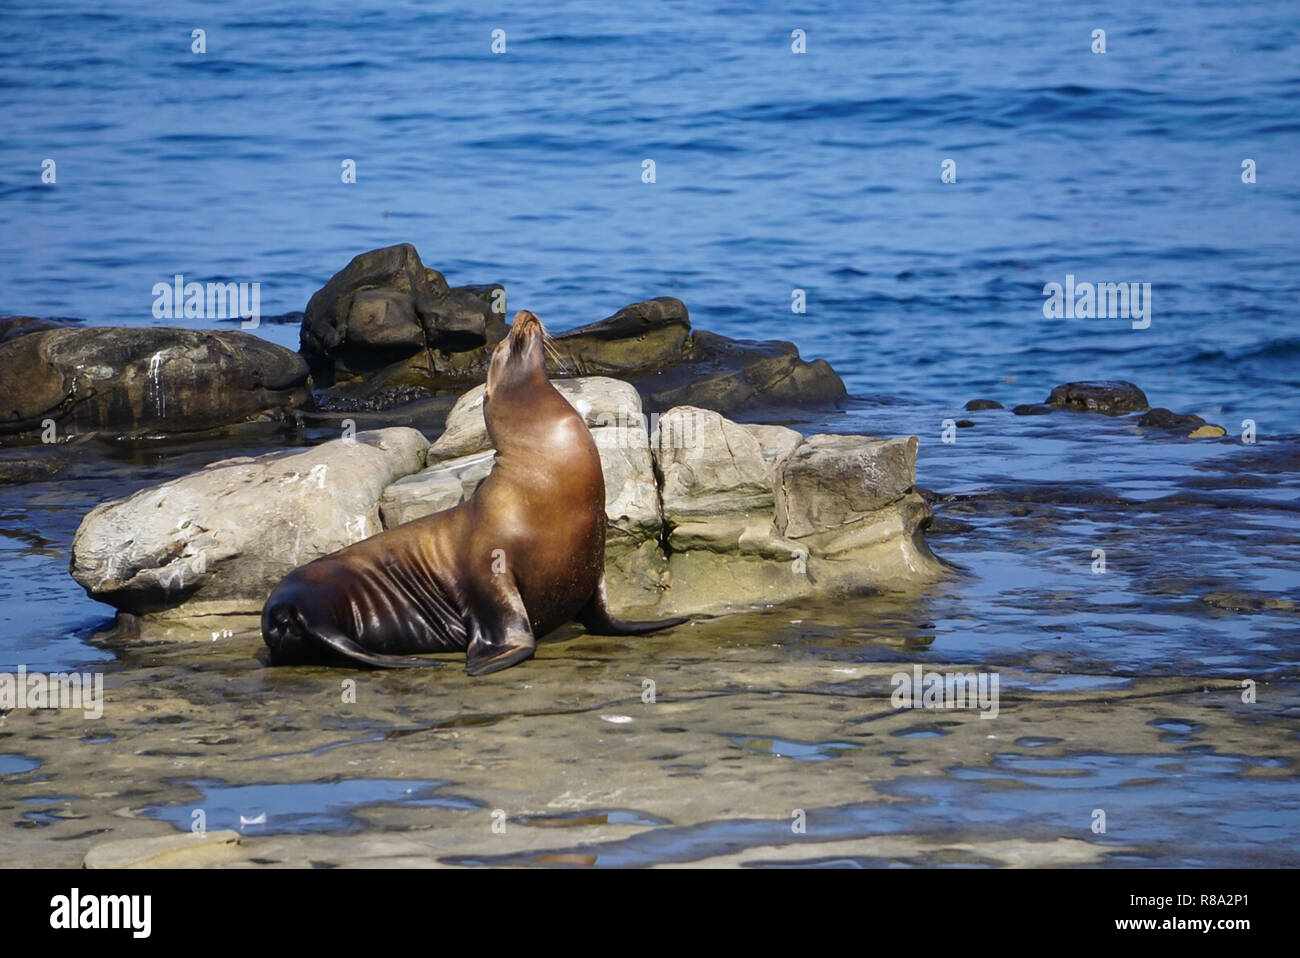 A Sea Lion sitting on the rocks at the edge of the Pacific Ocean on the California Coast Stock Photo